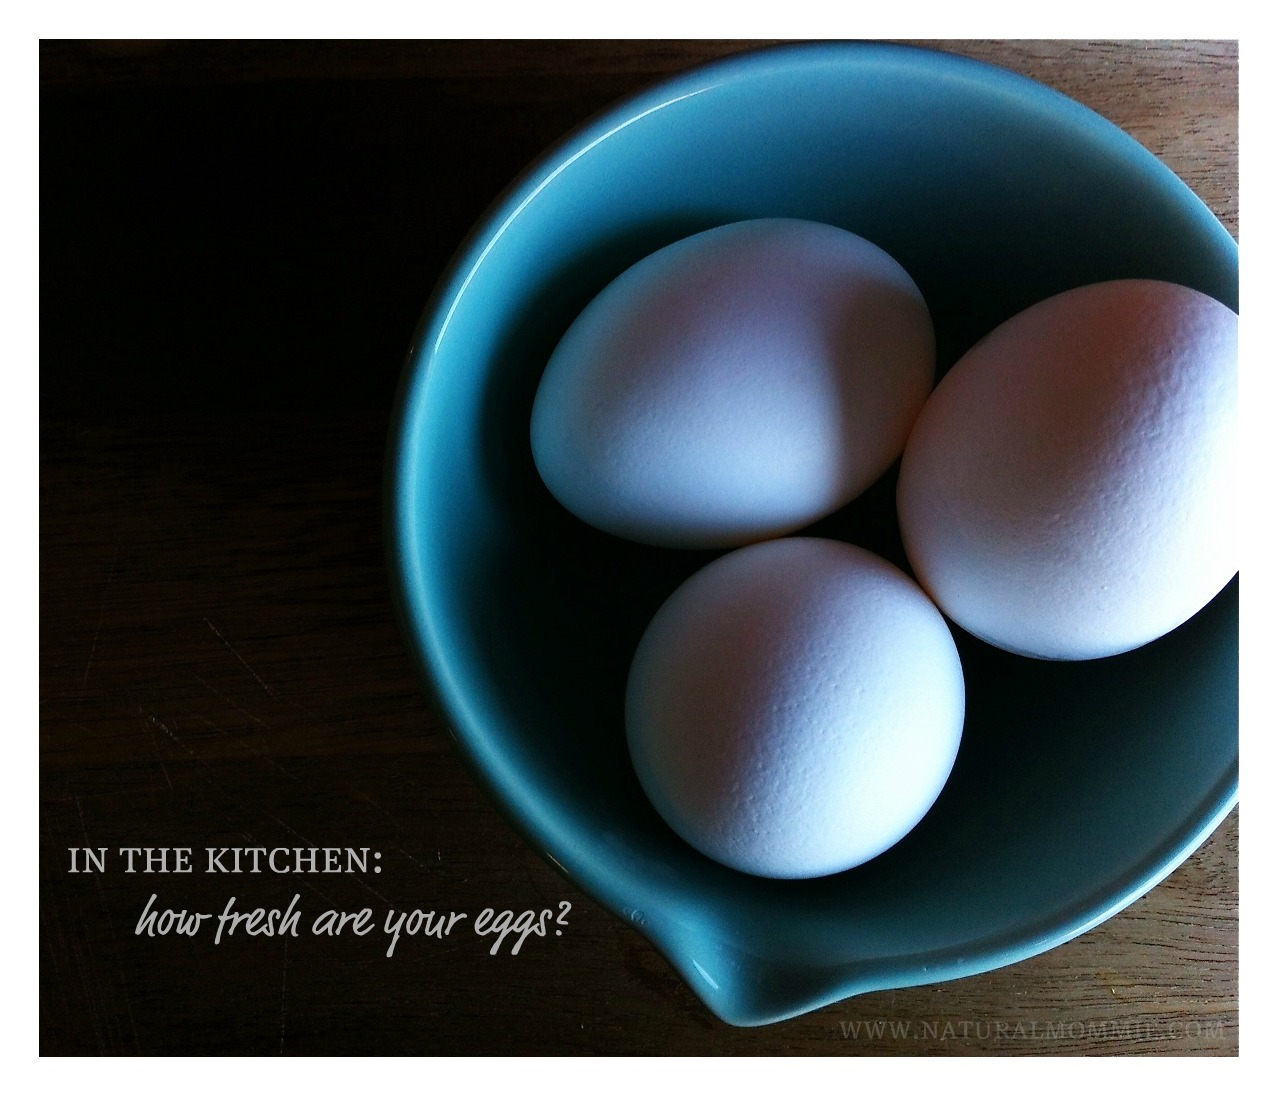 in the kitchen: how fresh are your eggs?